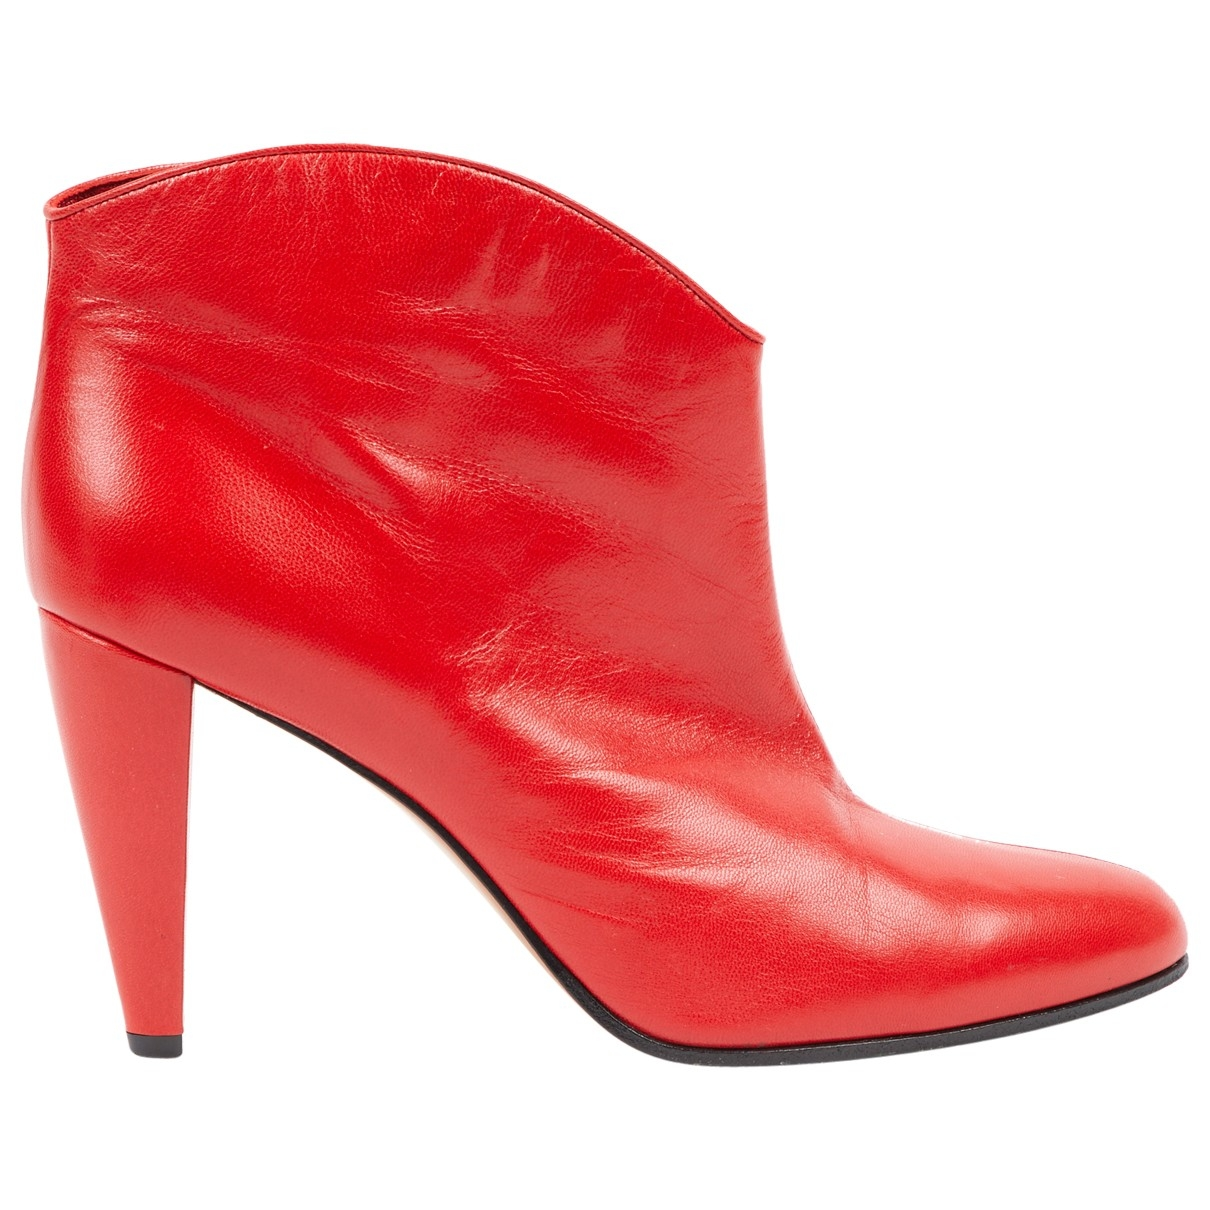 Celine \N Red Leather Boots for Women 39 EU